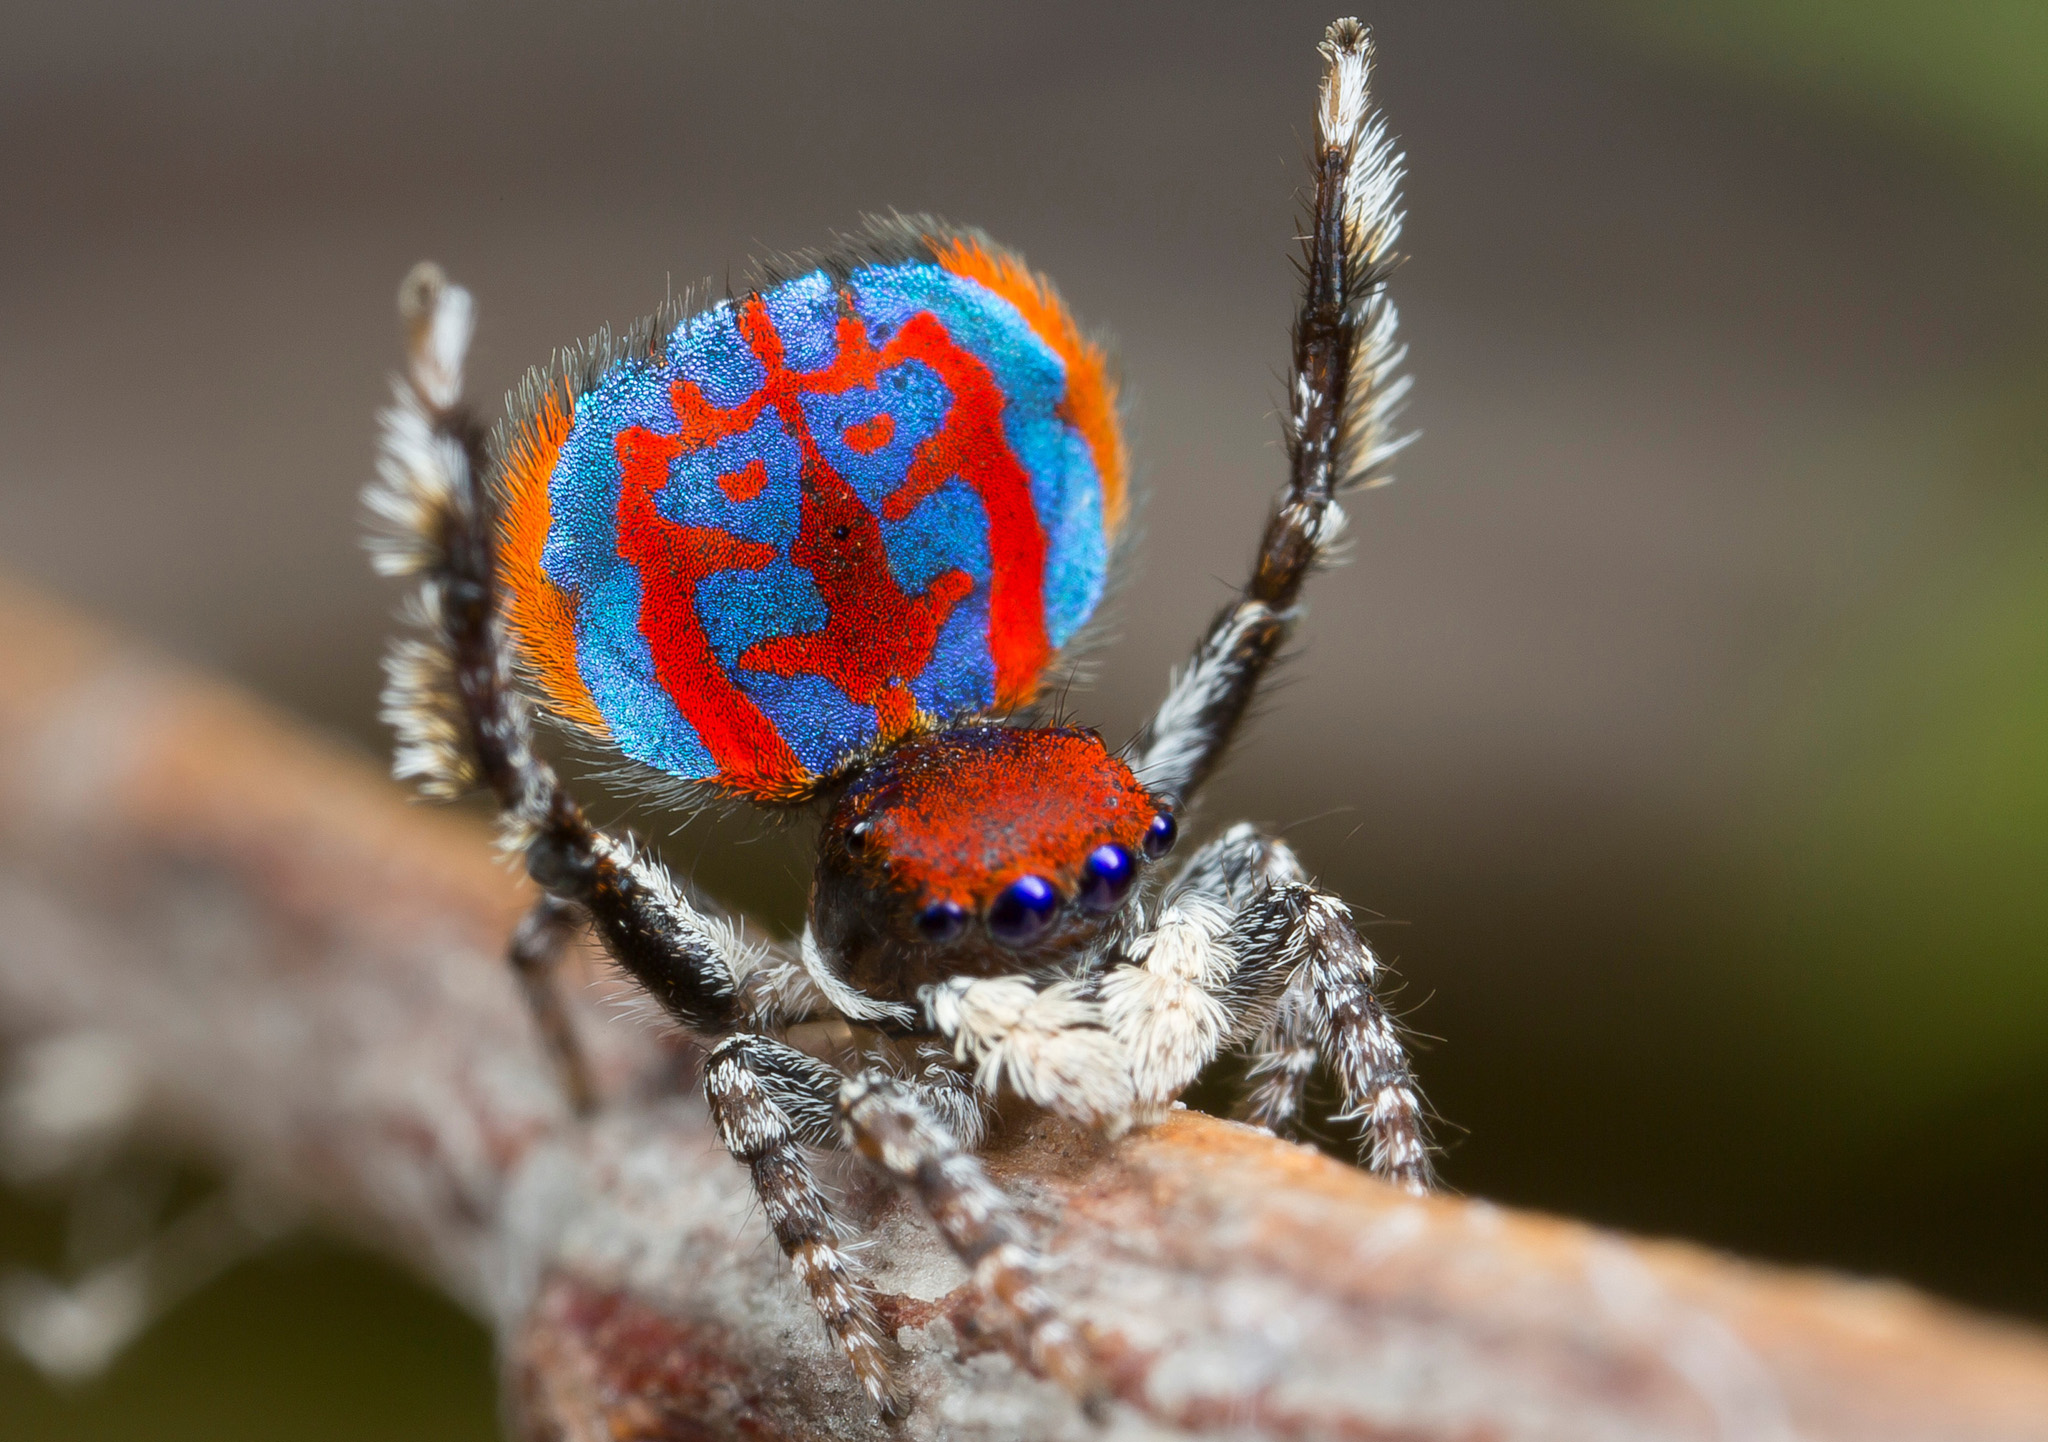 A specimen of the newly-discovered Australian Peacock spider, Maratus Bubo, shows off his colourful abdomen in this undated picture from Australia.